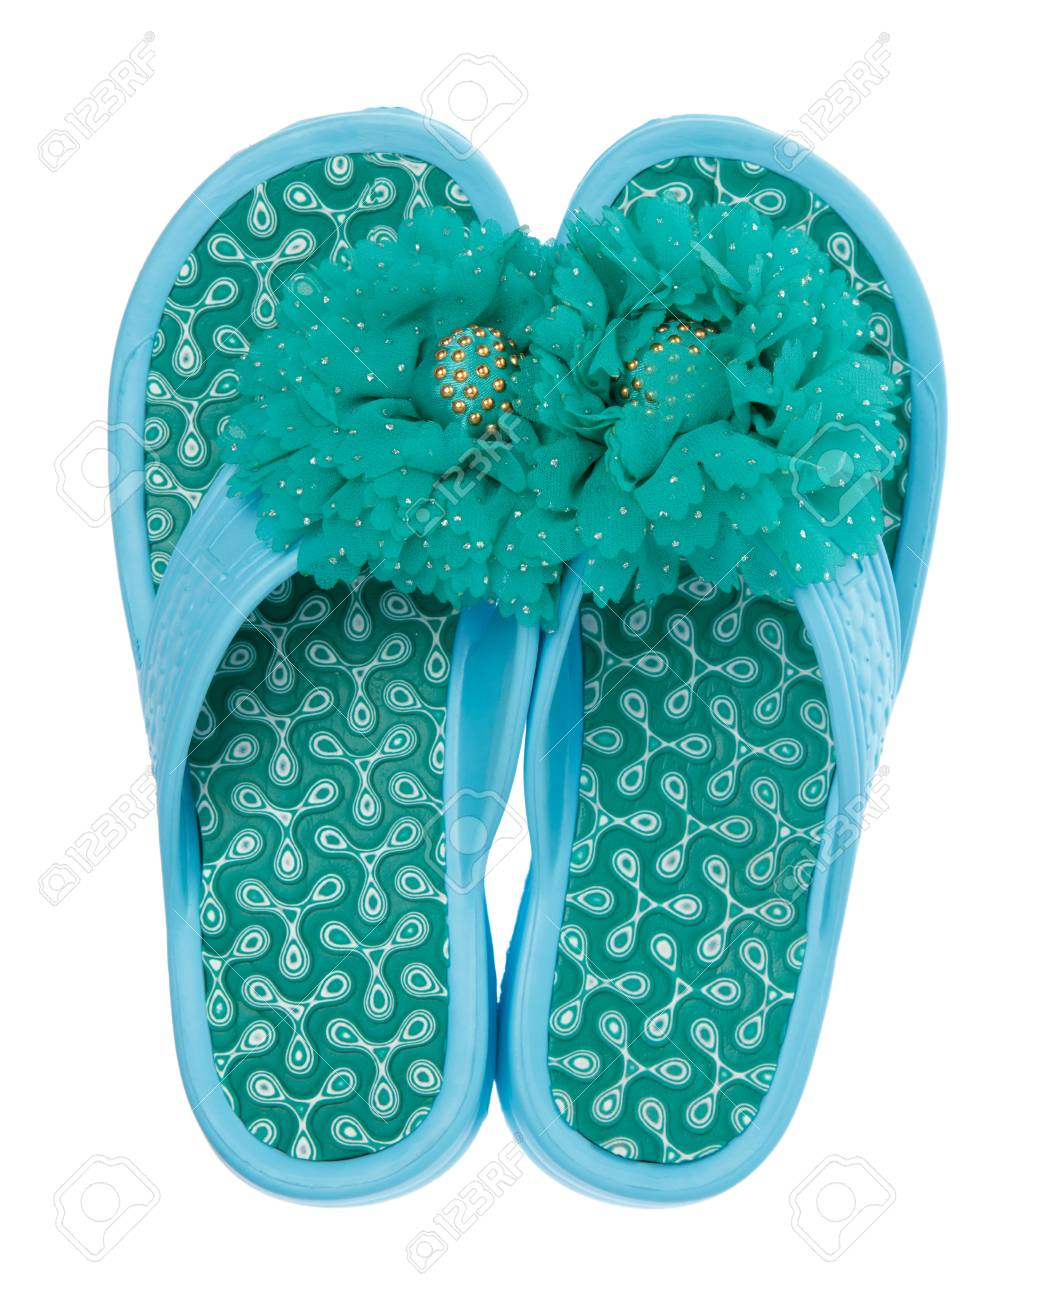 a57a1c4d36d7 Blue flip-flops with flowers isolated on white background Stock Photo -  108573582